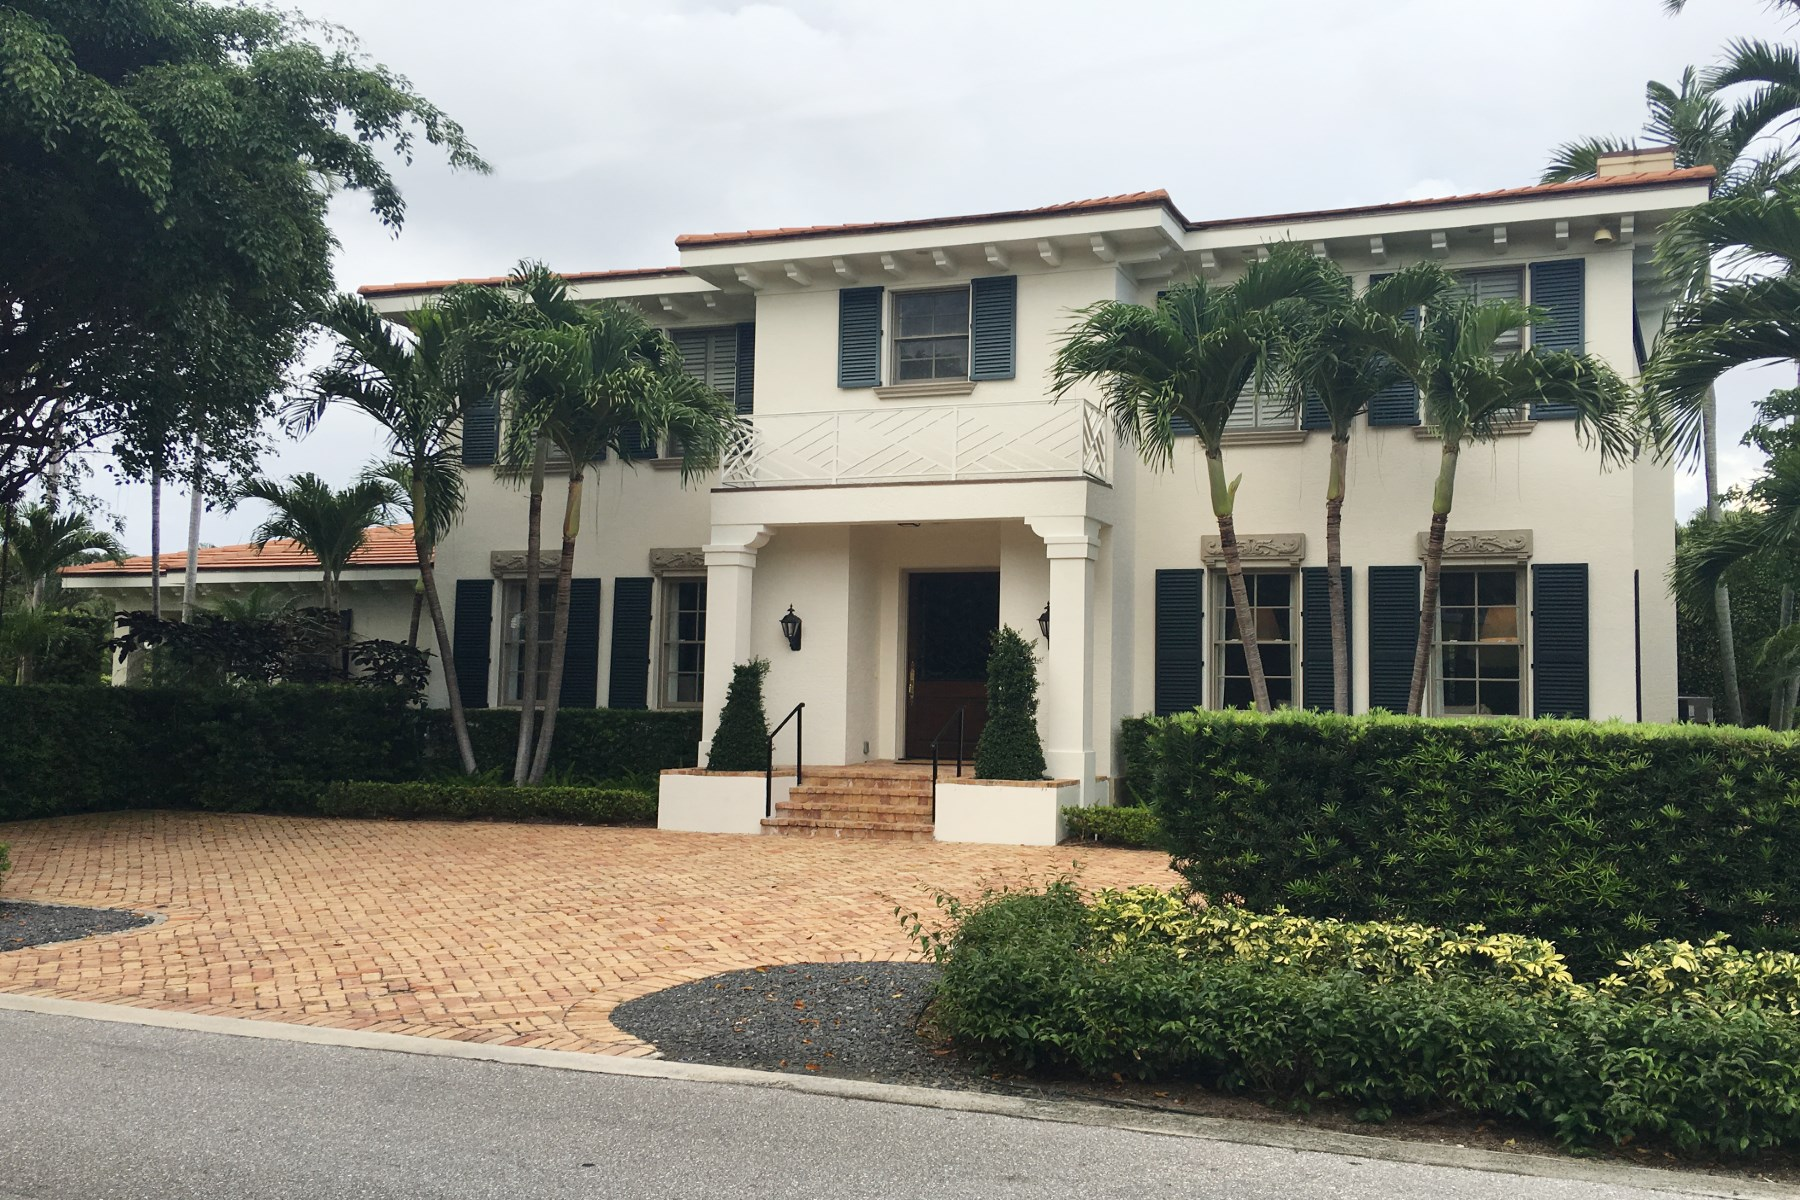 Maison unifamiliale pour l Vente à Perfection on North Lake Way 1263 N Lake Way North End, Palm Beach, Florida, 33480 États-Unis